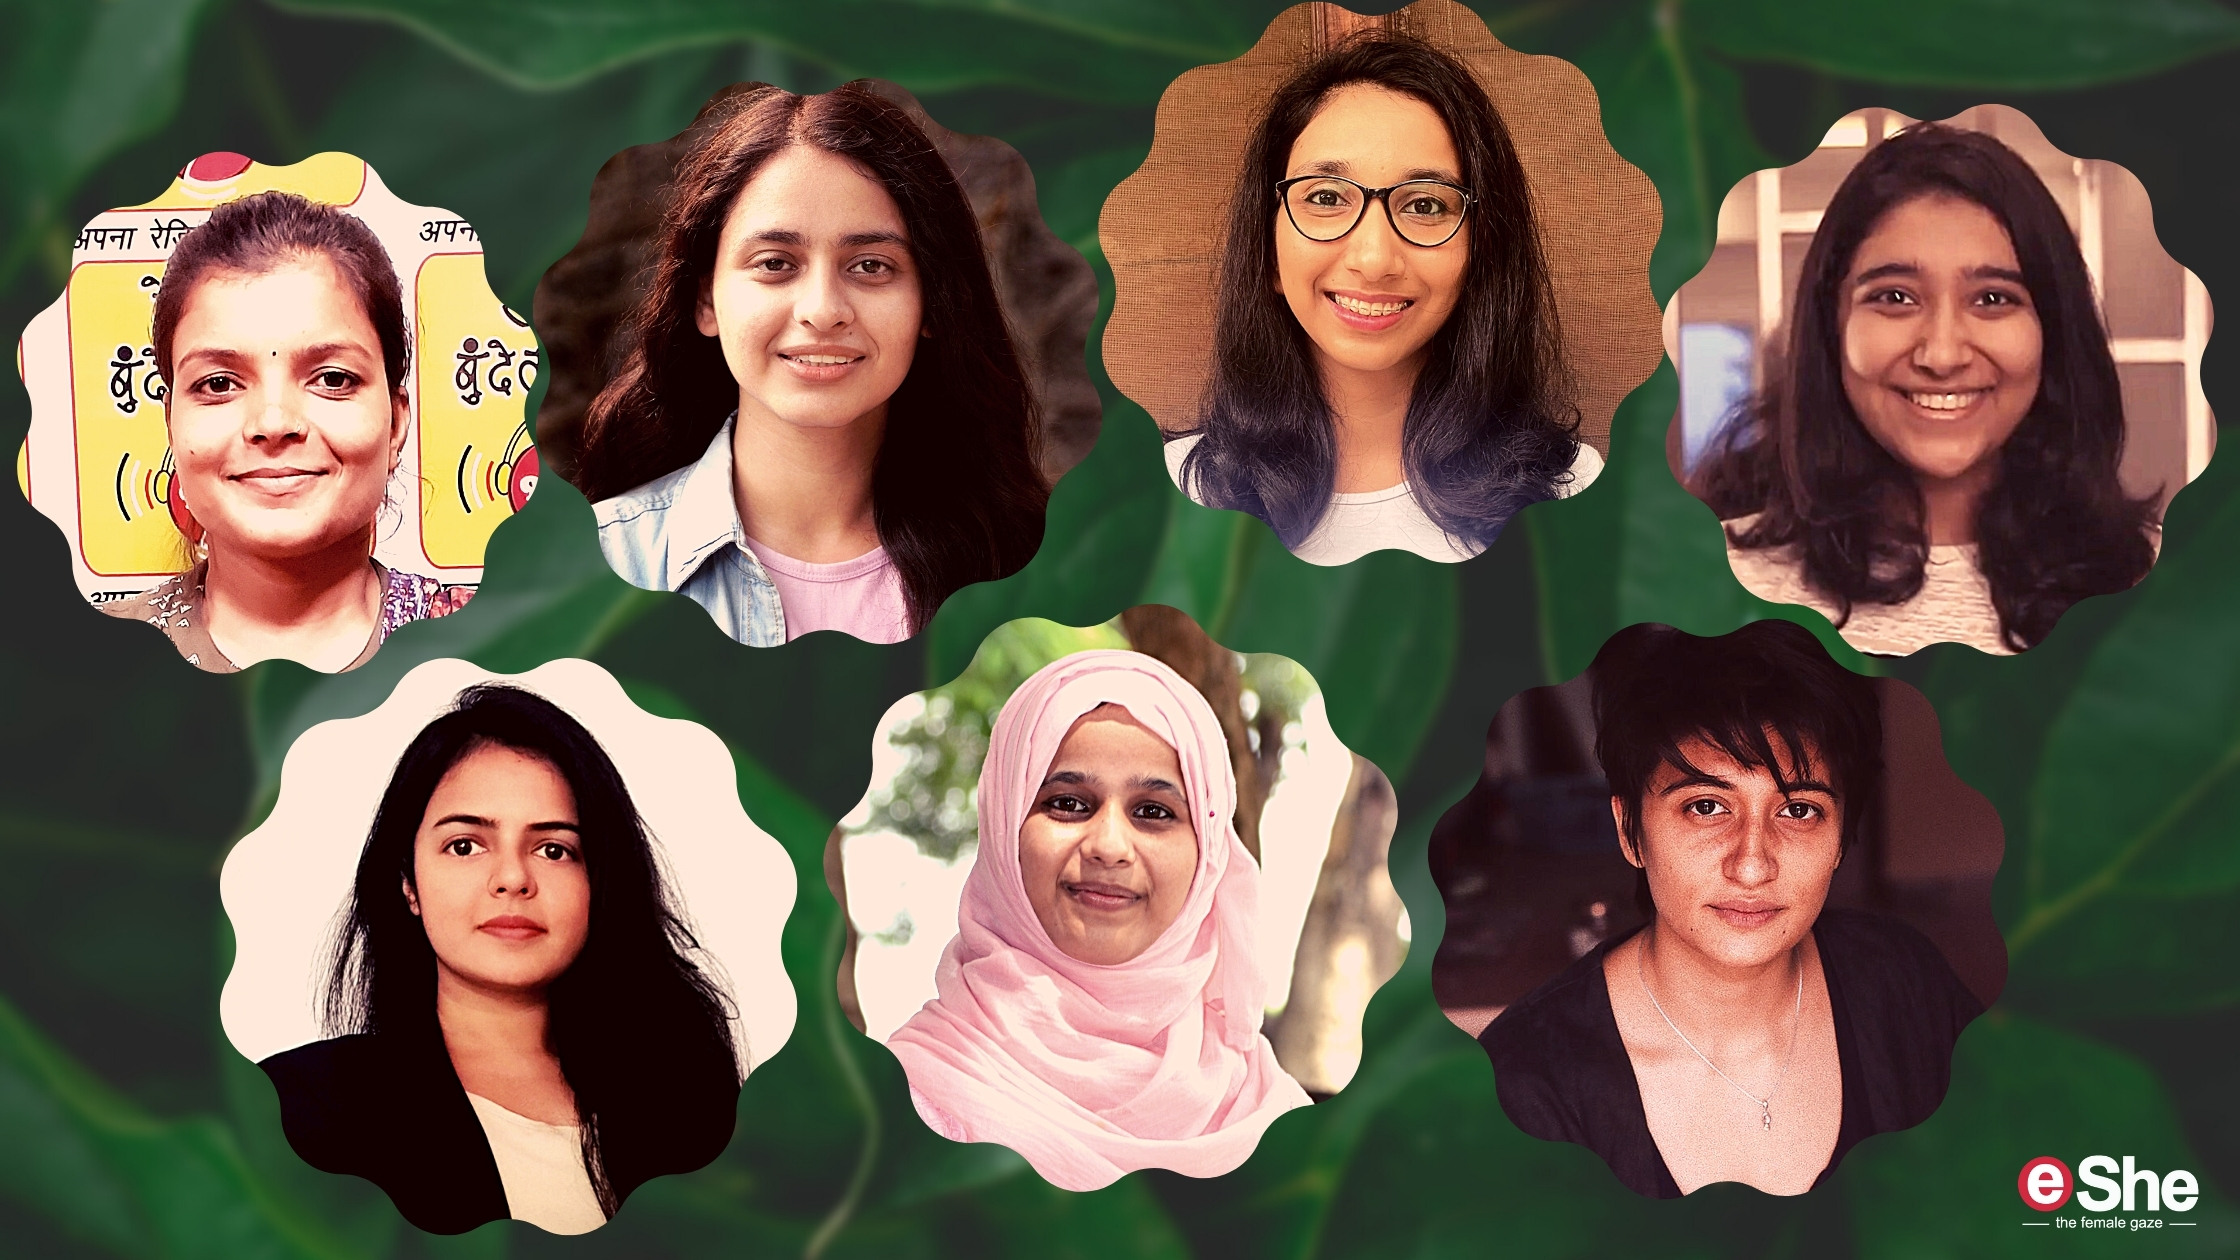 These 7 young Indian climate-change activists are fighting for a greener future